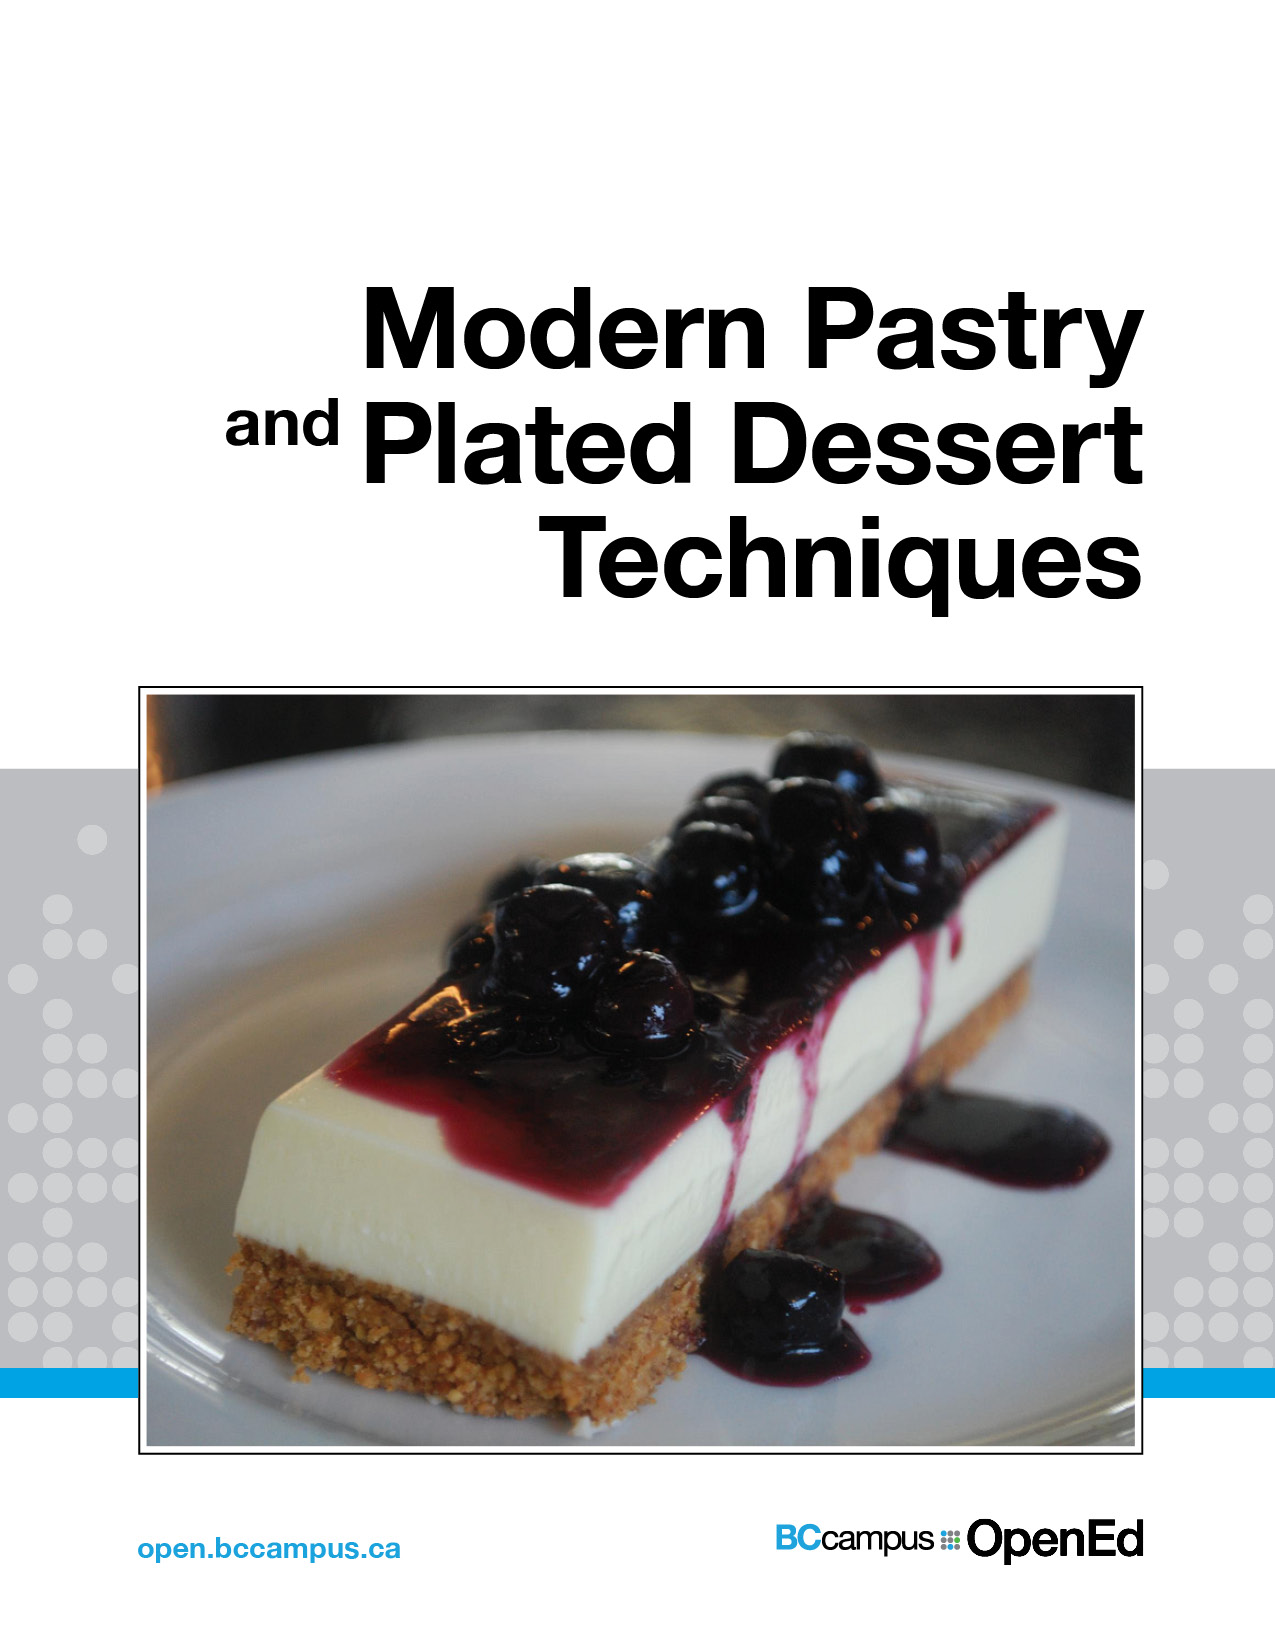 Cover image for Modern Pastry and Plated Dessert Techniques